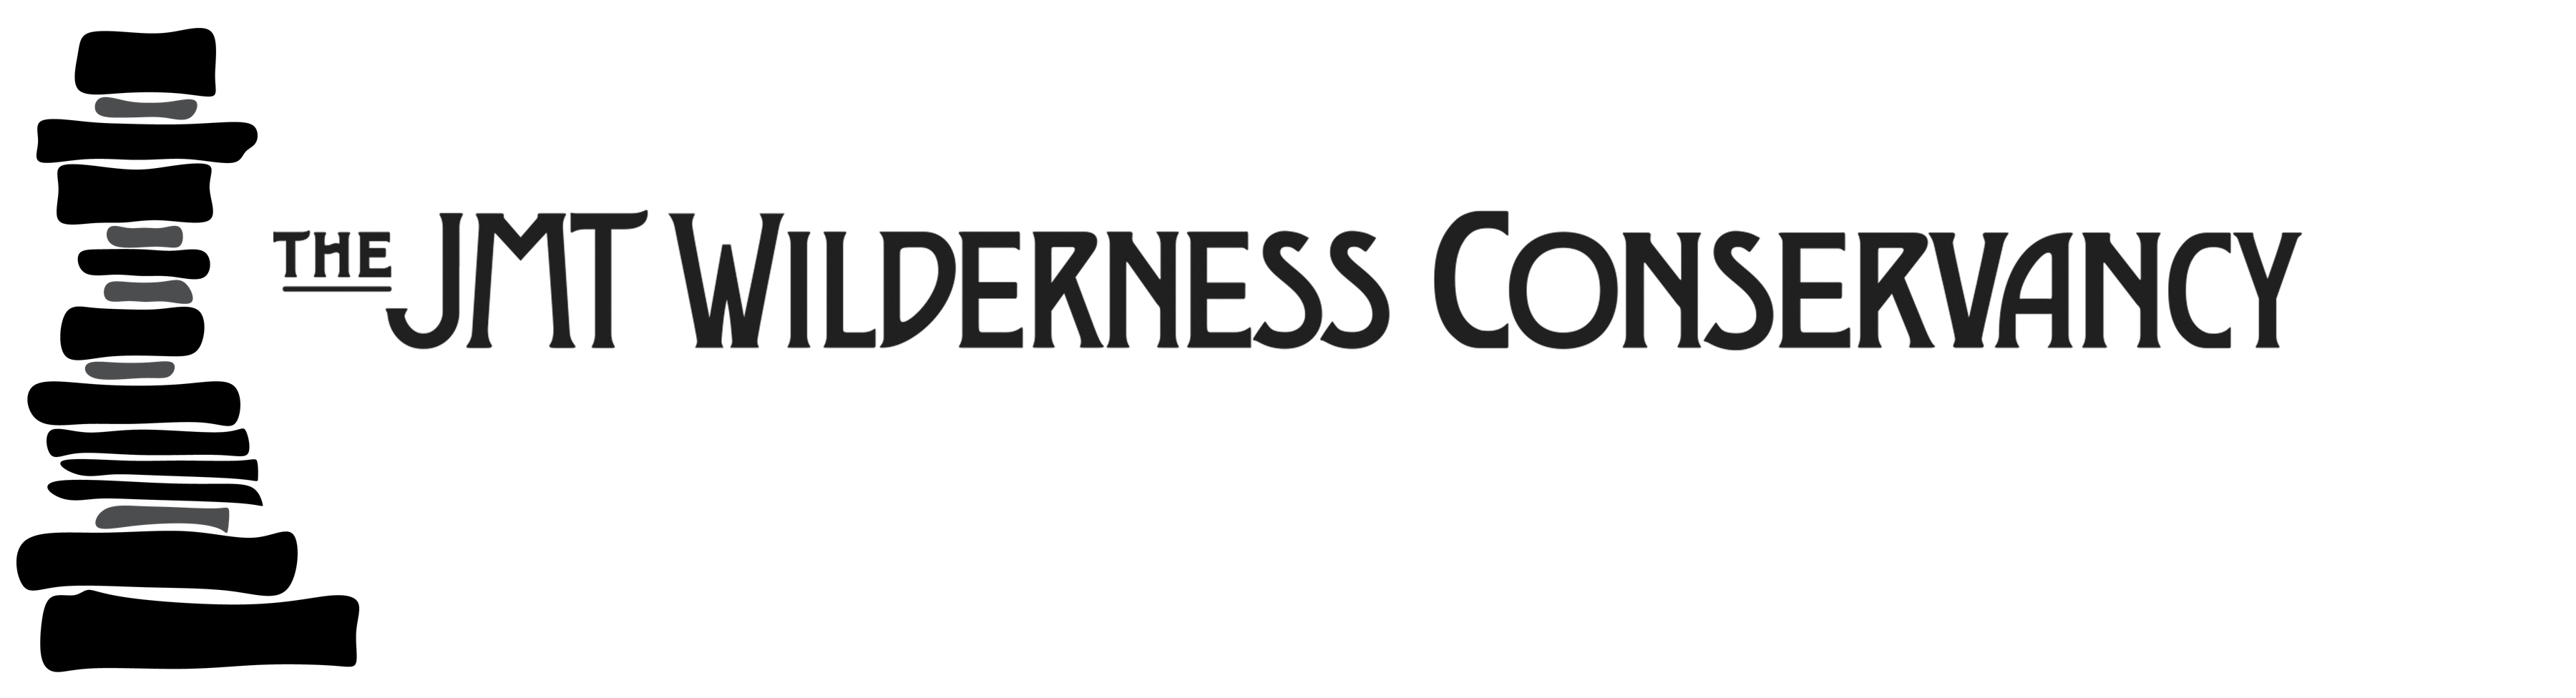 The JMT Wilderness Conservancy Logo